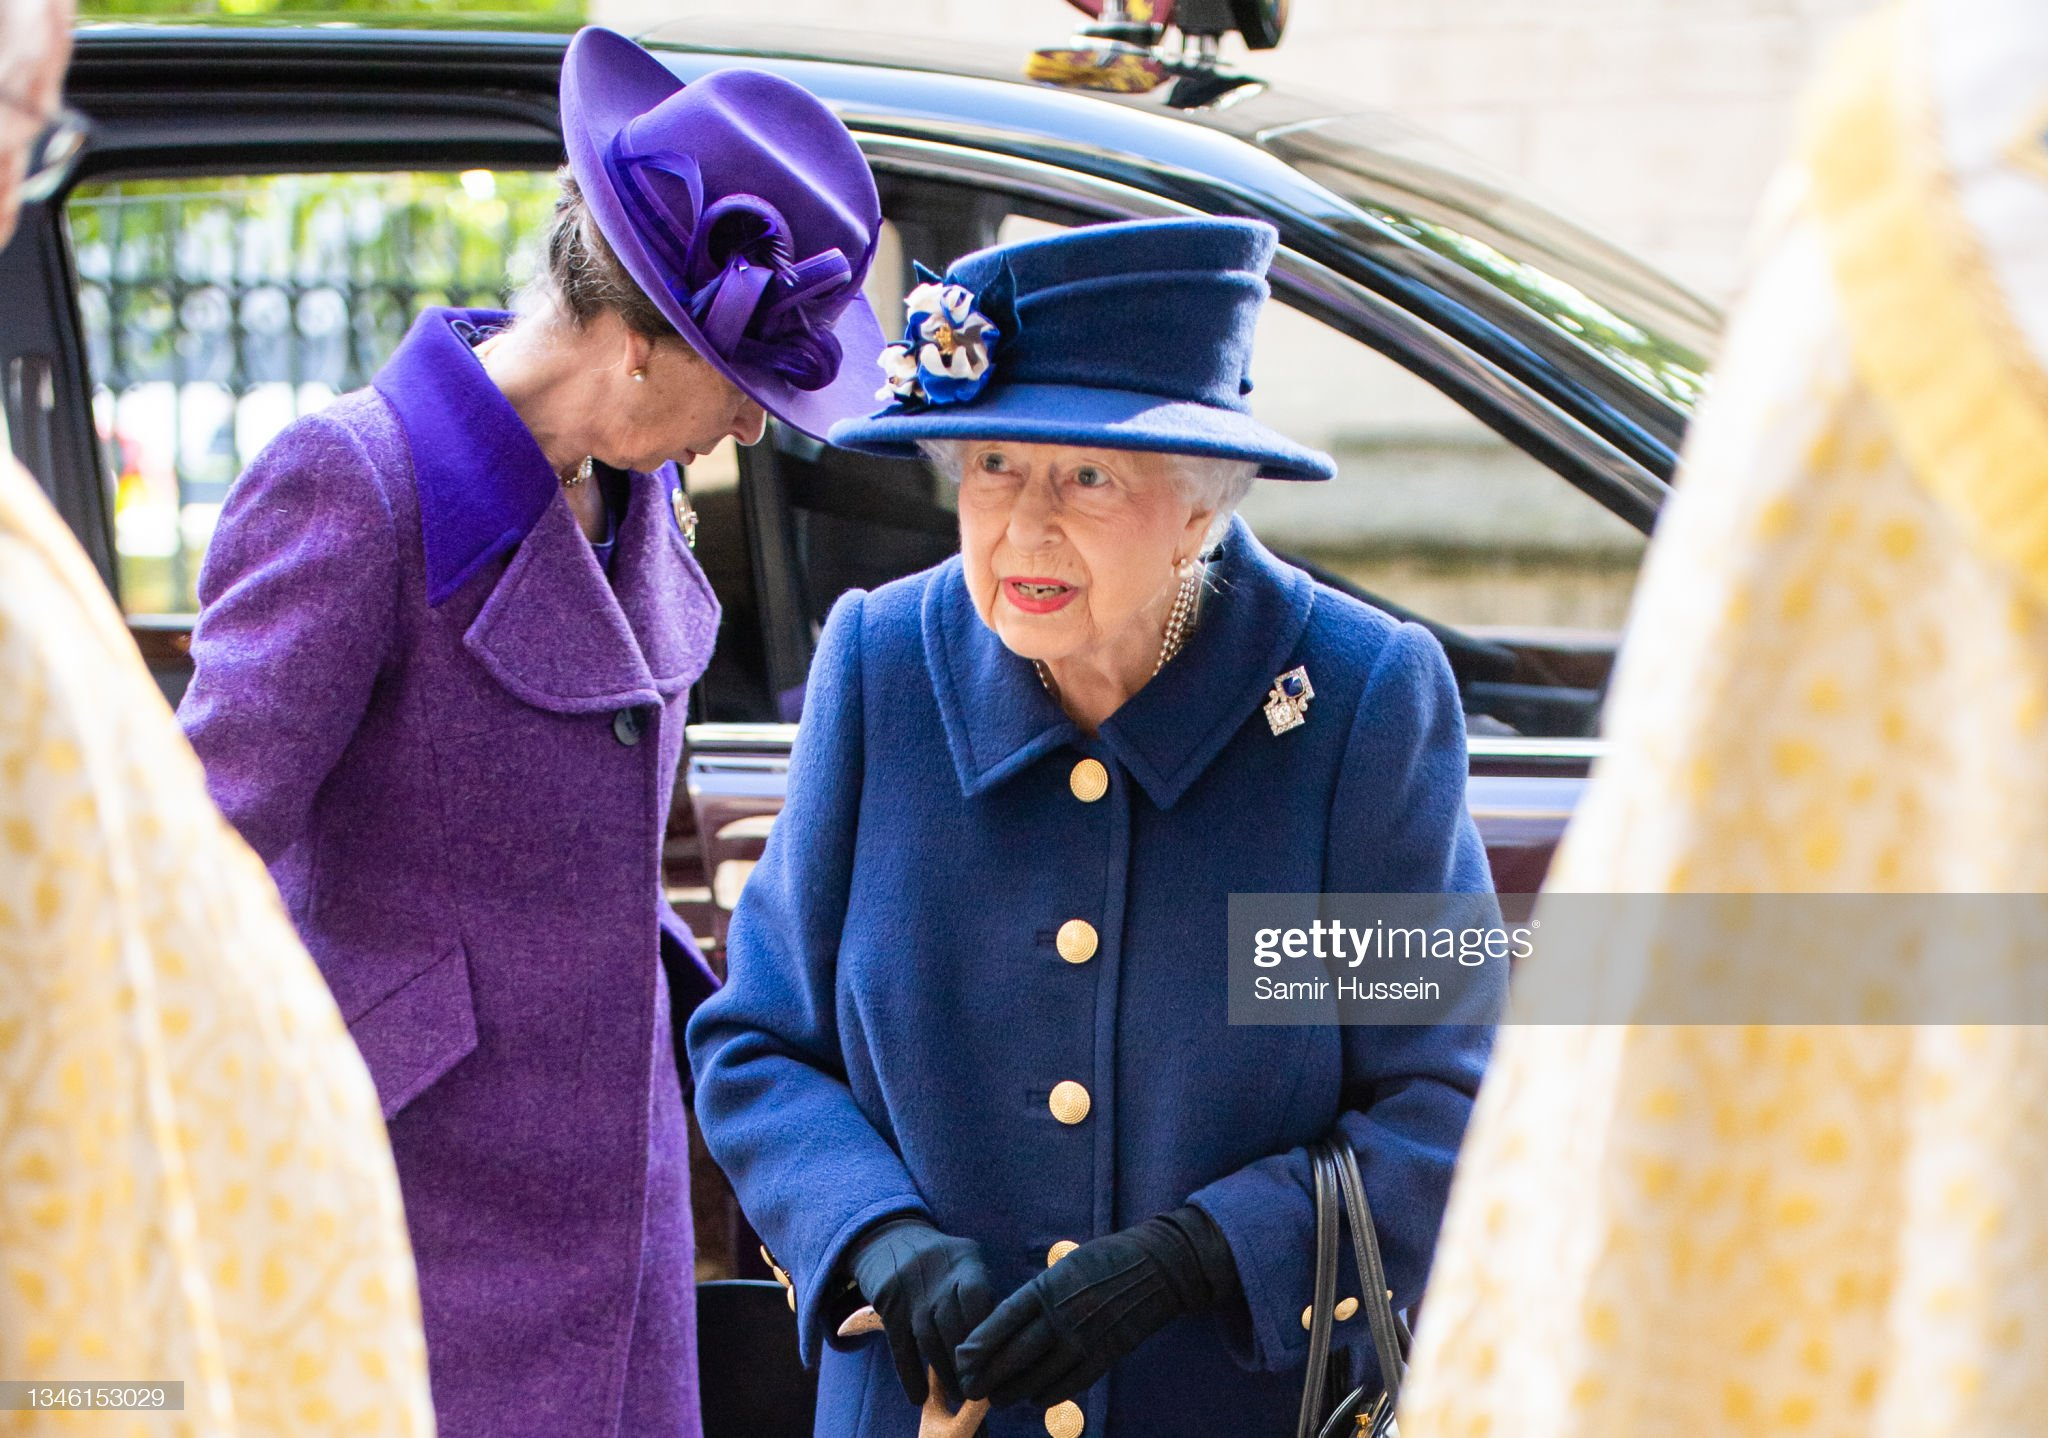 queen-elizabeth-ii-and-princess-anne-princess-royal-attend-a-service-picture-id1346153029